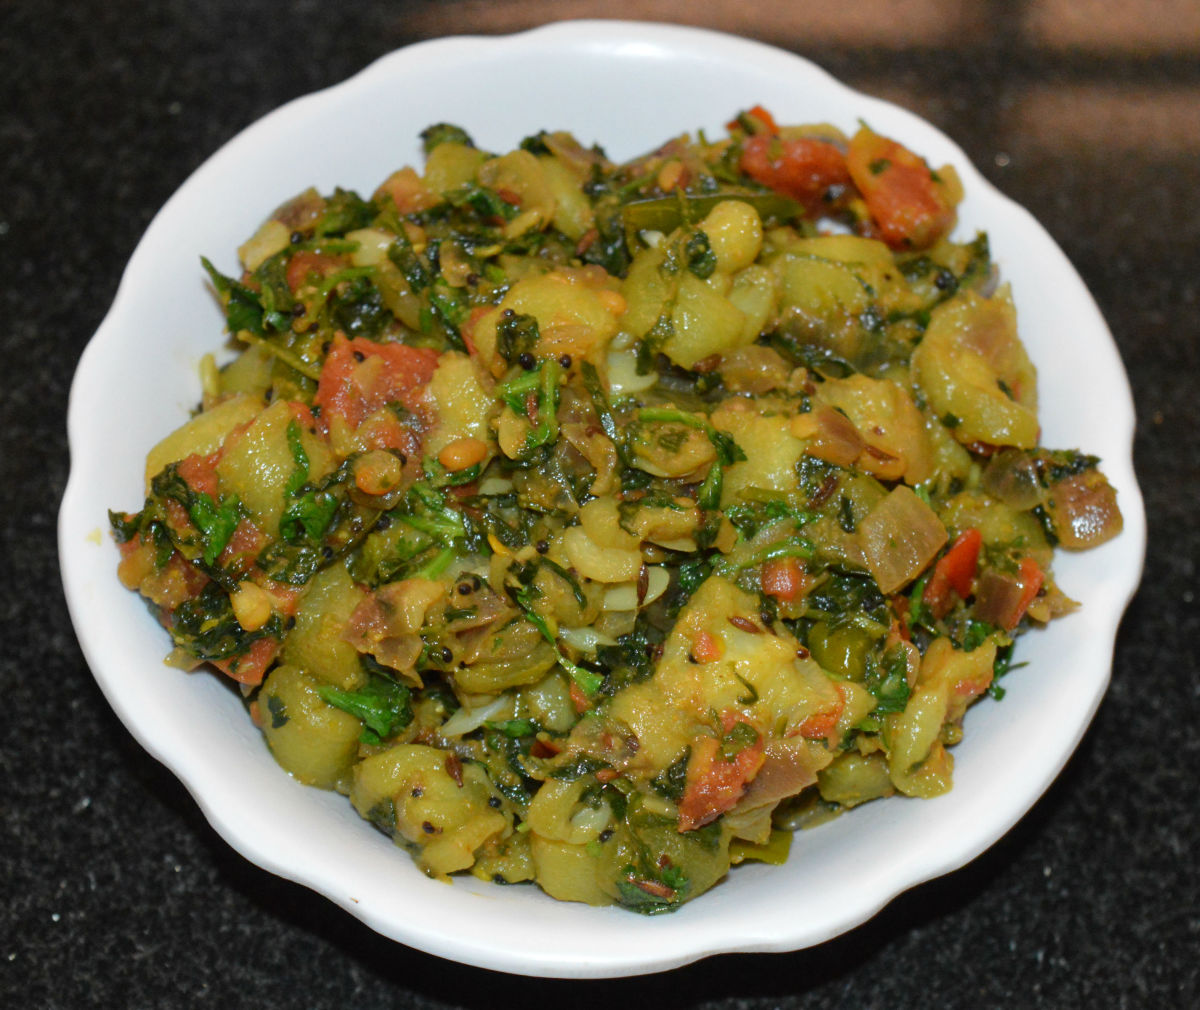 The completed ridge gourd (turai) and fenugreek leaf (methi) curry.